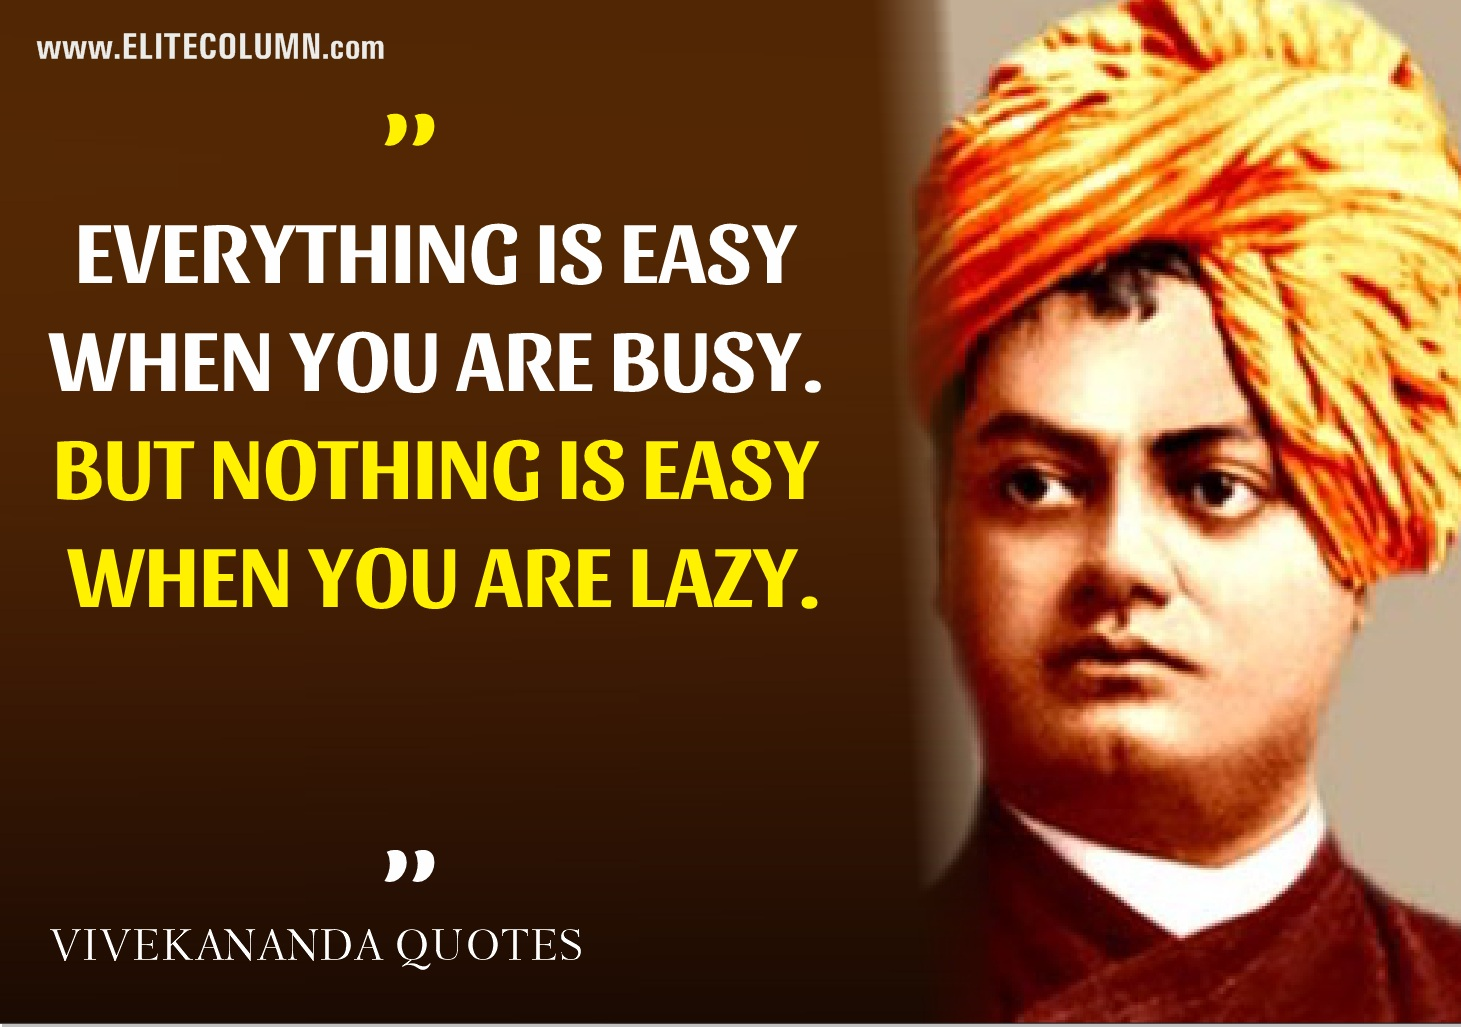 Quotes Vivekananda Amusing 10 Swami Vivekananda Quotes Which Are Still Relevant  Elitecolumn